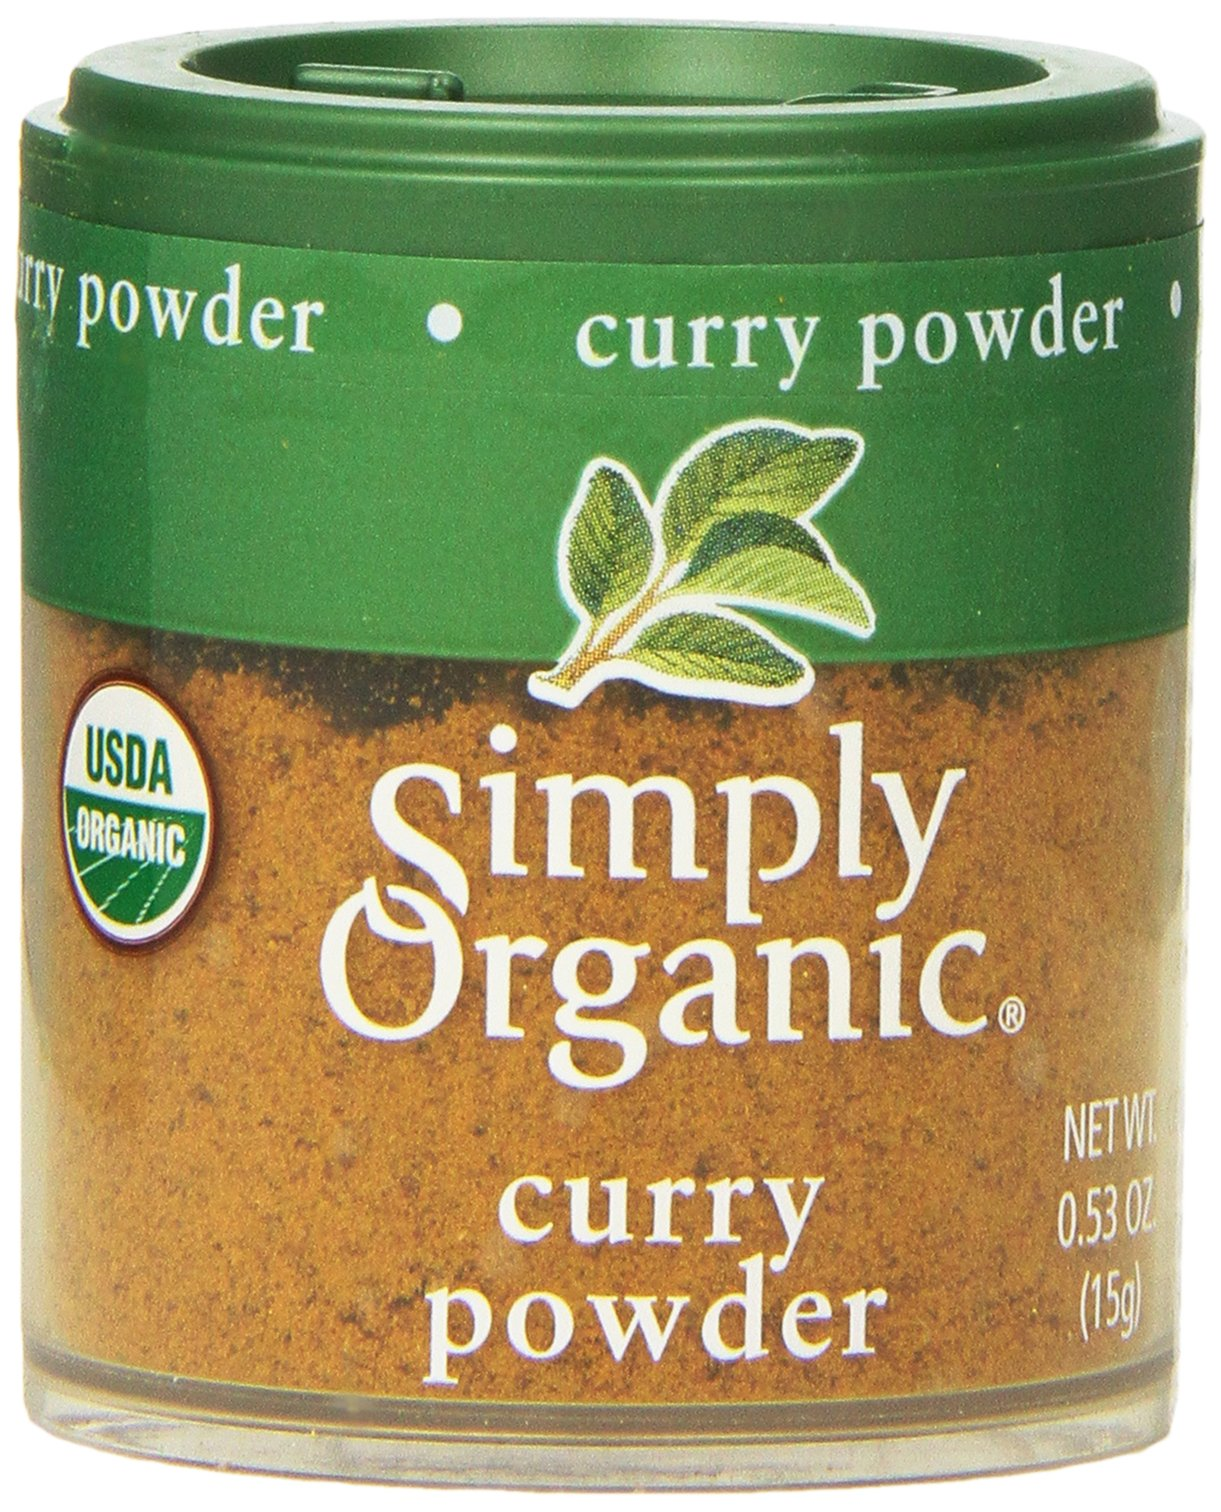 Simply Organic Curry Powder, Mini Spice, 0.53 Ounce (Pack of 6) by Simply Organic (Image #1)